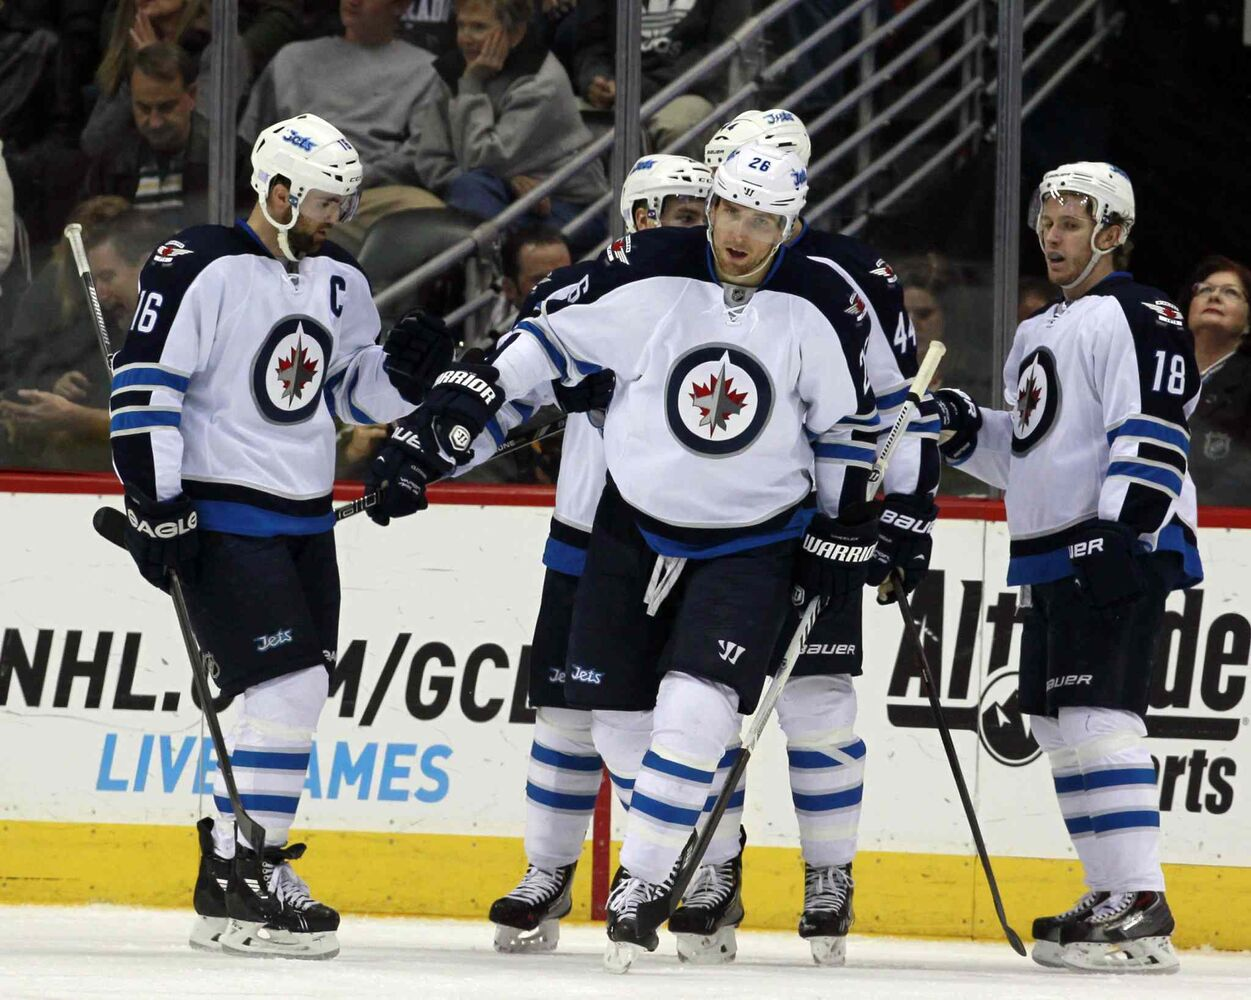 Blake Wheeler (centre) celebrates his power play goal with Andrew Ladd (left) and centre Bryan Little (right) in eth second period.